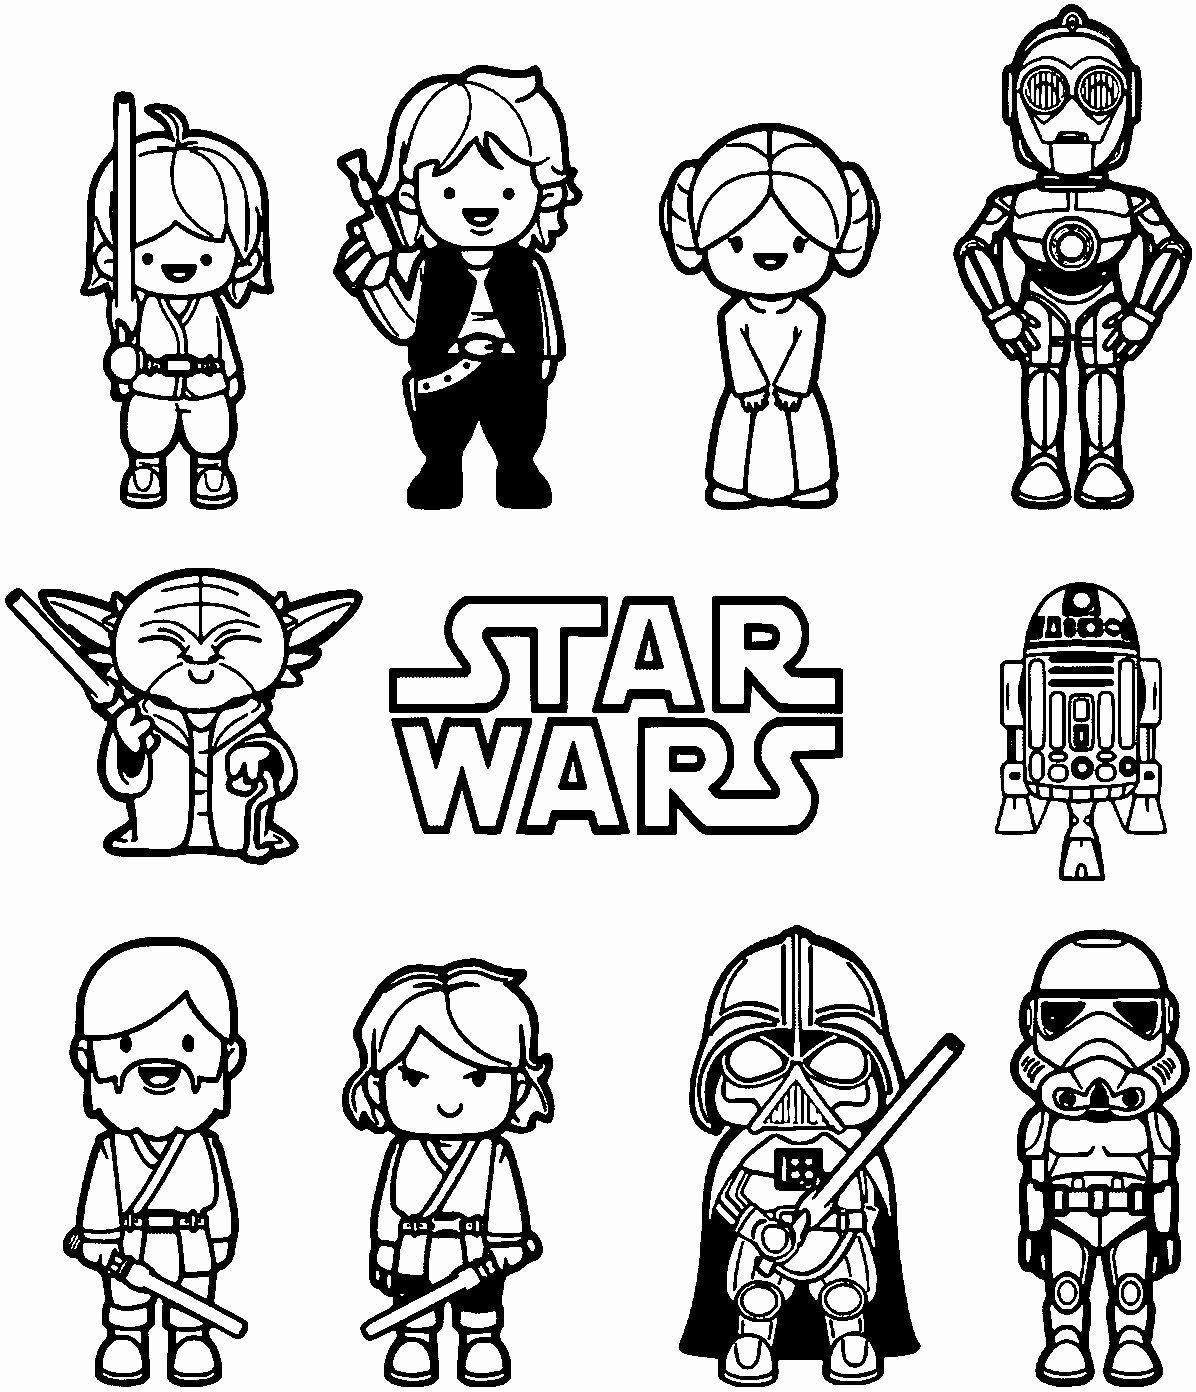 Coloring Activities In The Playground Awesome Best Pop Stars Coloring Pages Lovespells Star Wars Coloring Sheet Star Wars Coloring Book Star Wars Cartoon